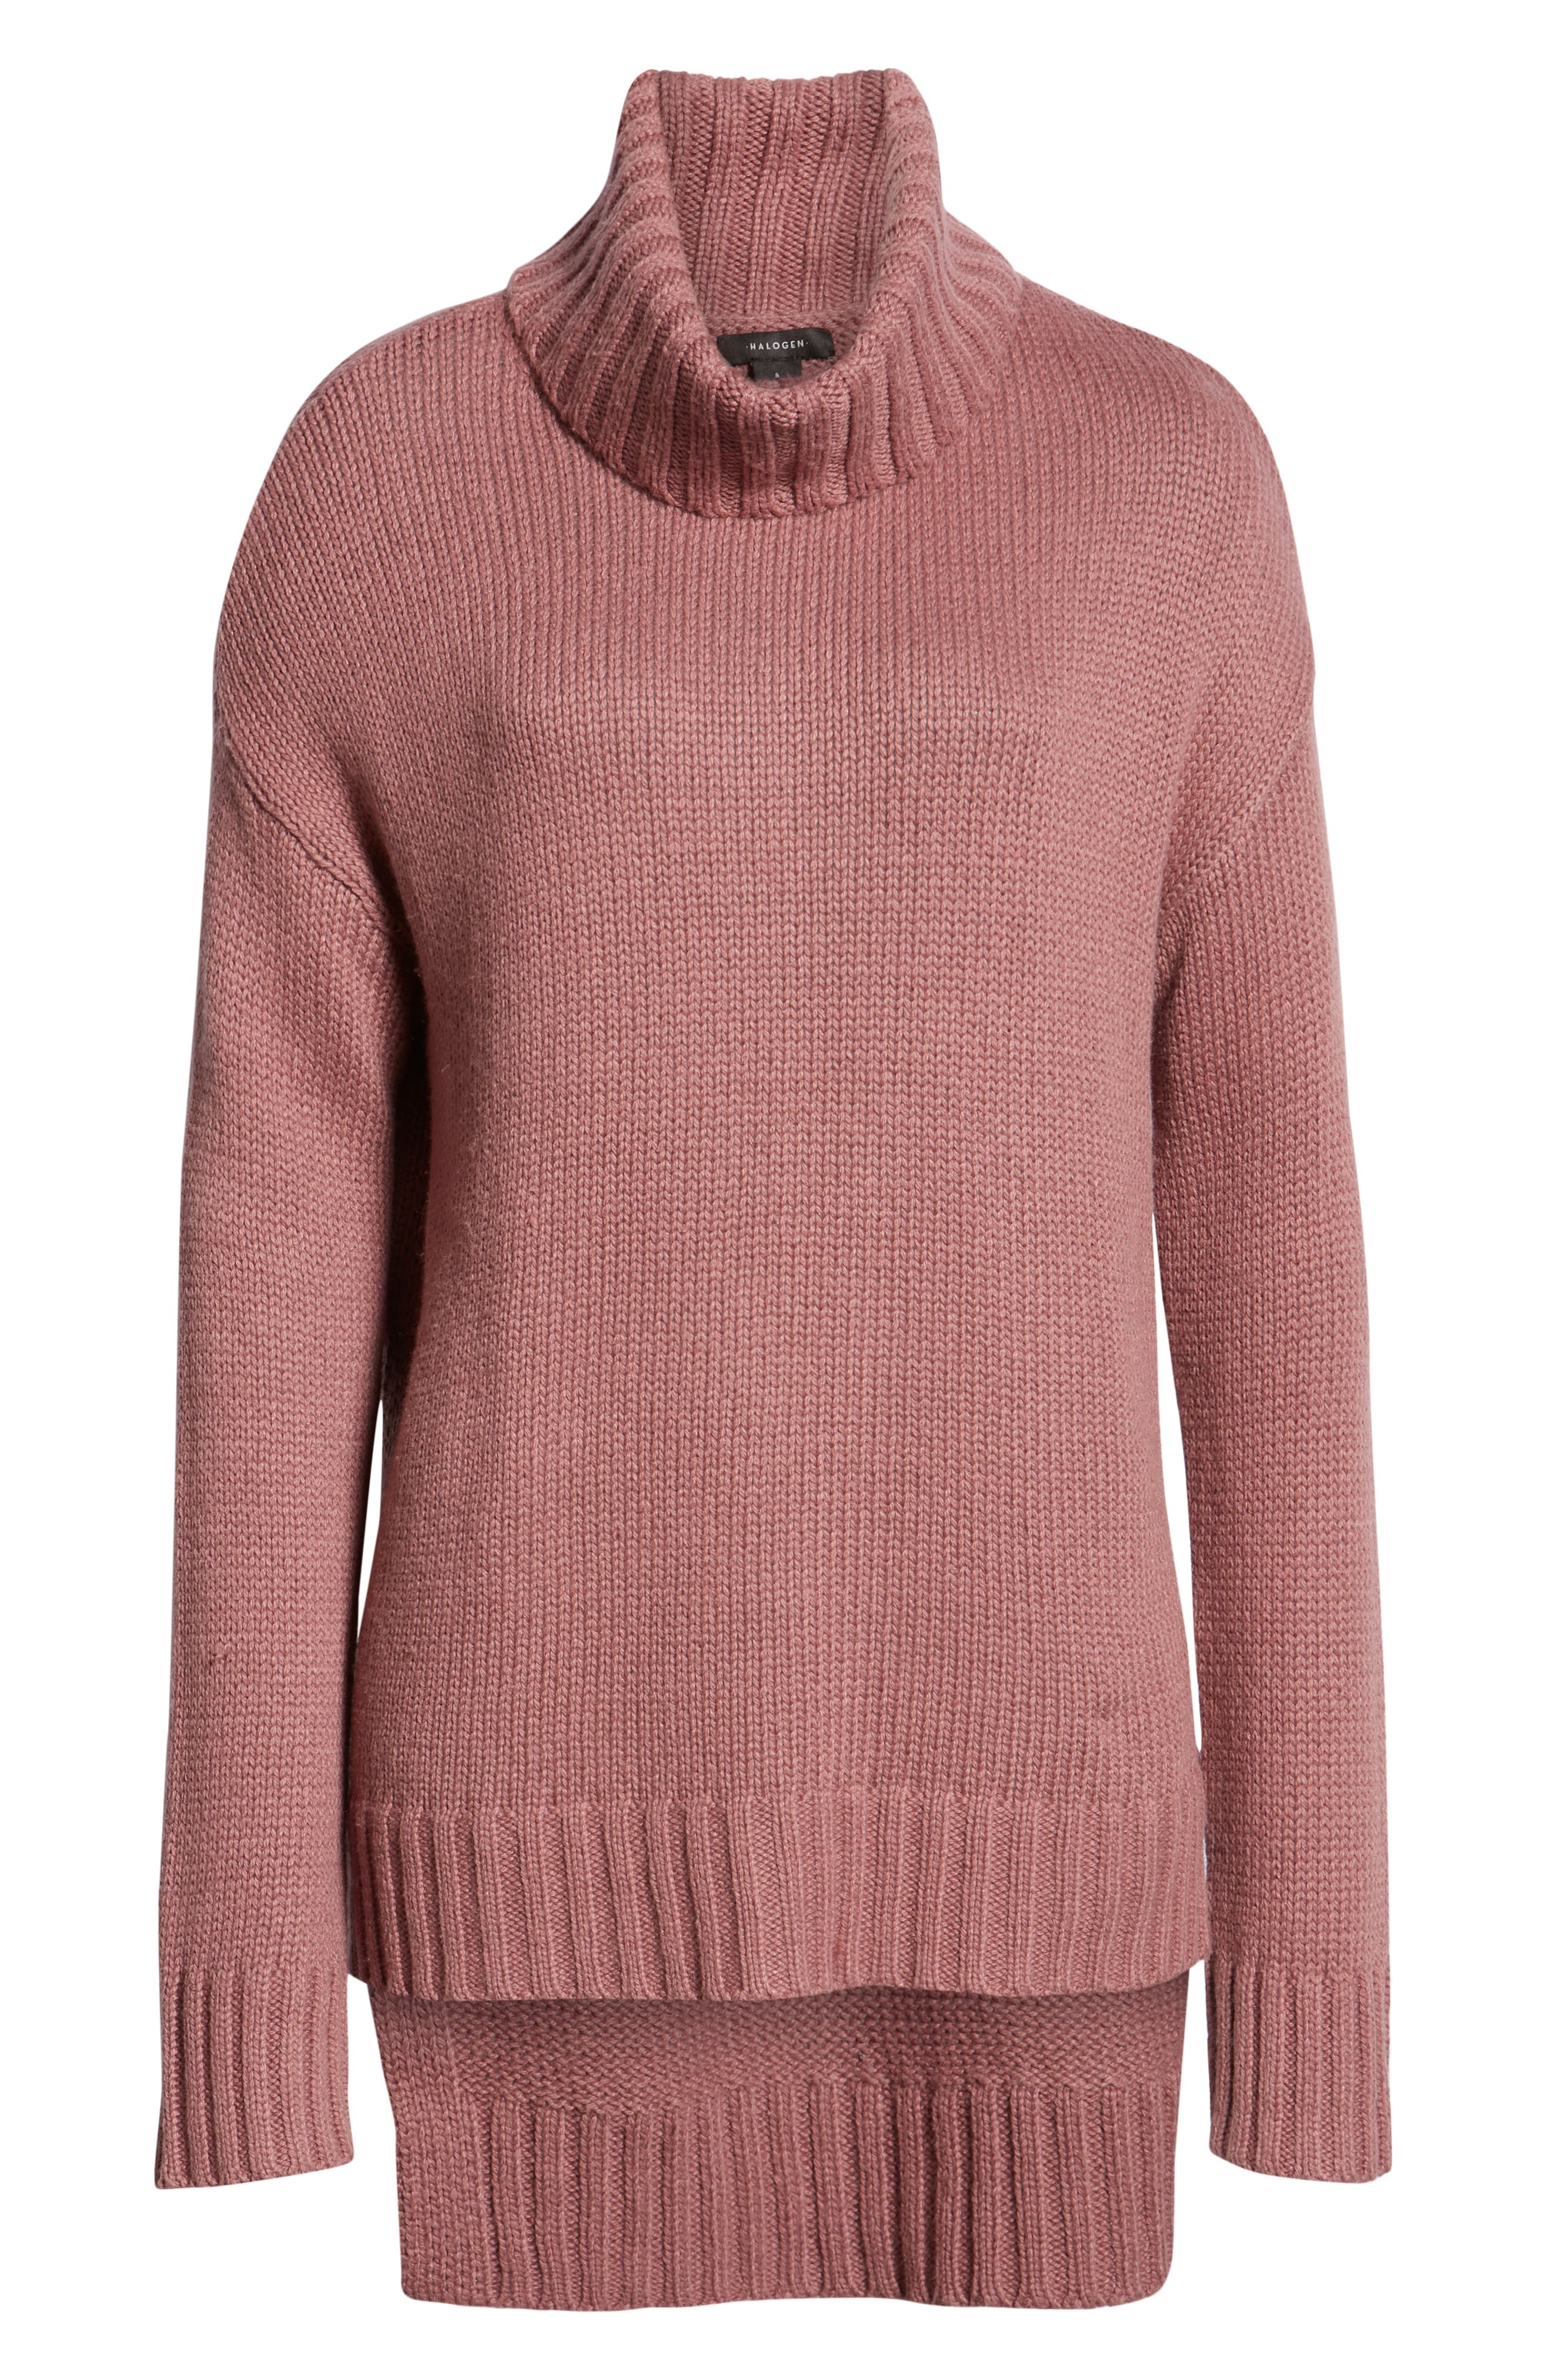 High/Low Turtleneck Sweater,                             Alternate thumbnail 6, color,                             PURPLE TAUPE